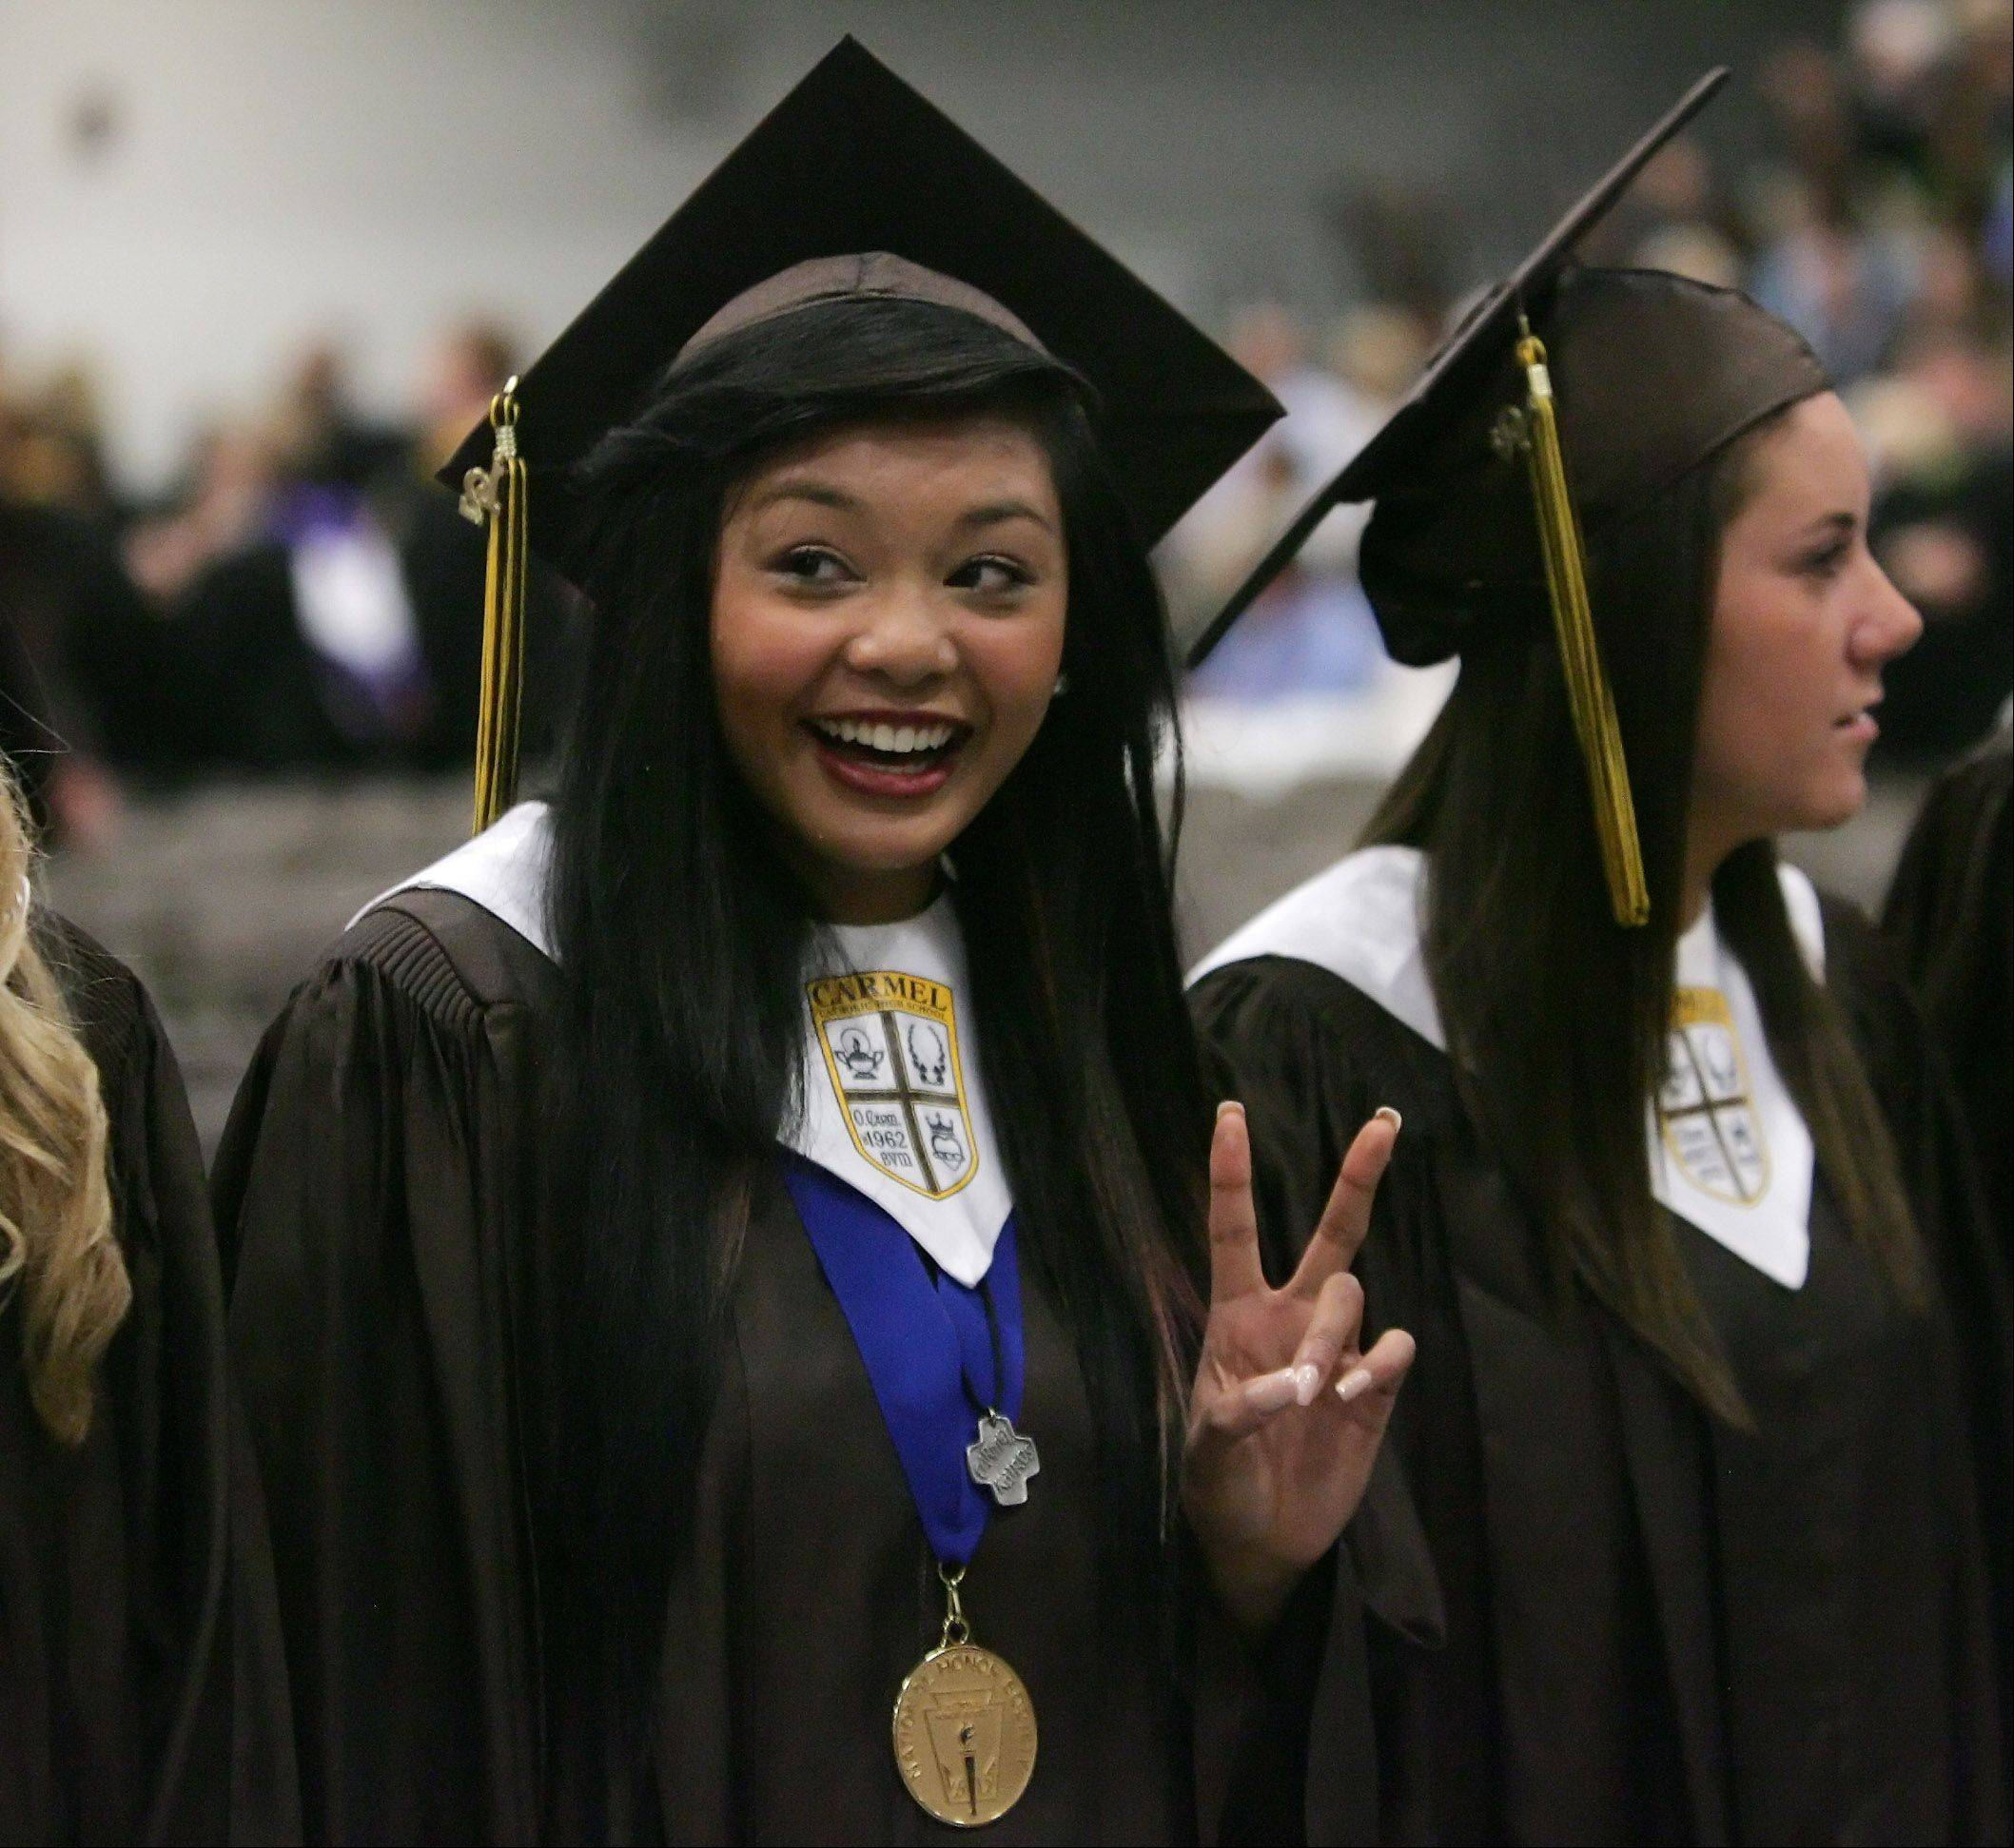 Jessica Bautista gives a victory sign to her family during graduation at Carmel Catholic High School Thursday at the school in Mundelein. The 2012 class consists of 360 graduates.